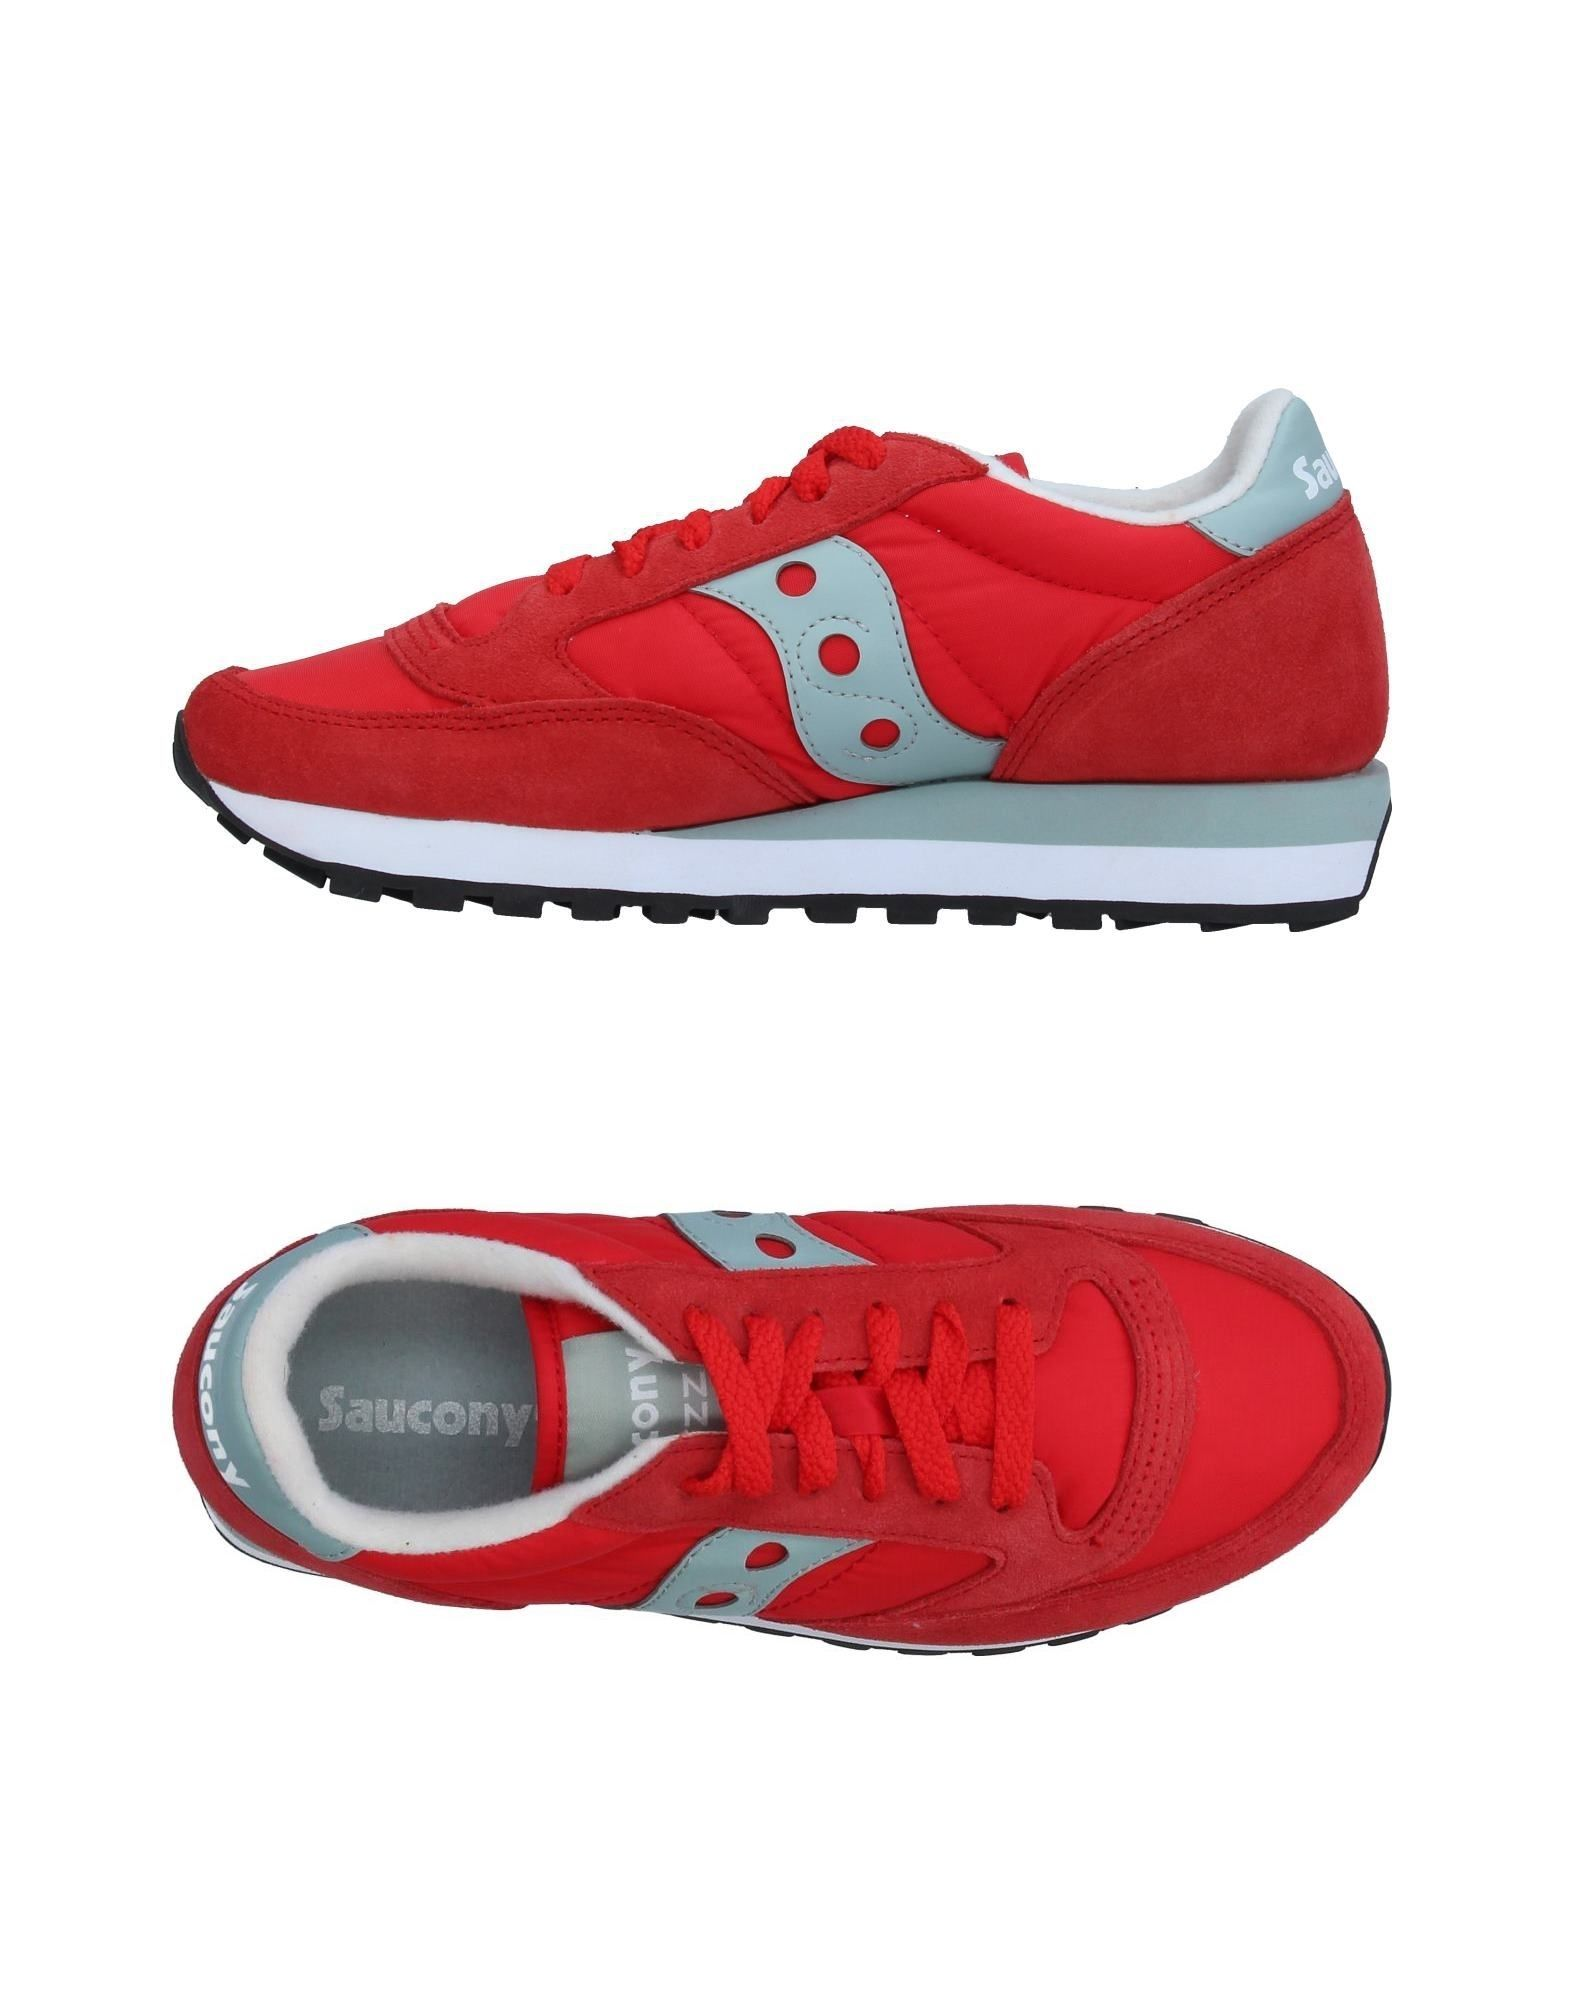 A buon mercato Sneakers Saucony Donna - 11359962XR